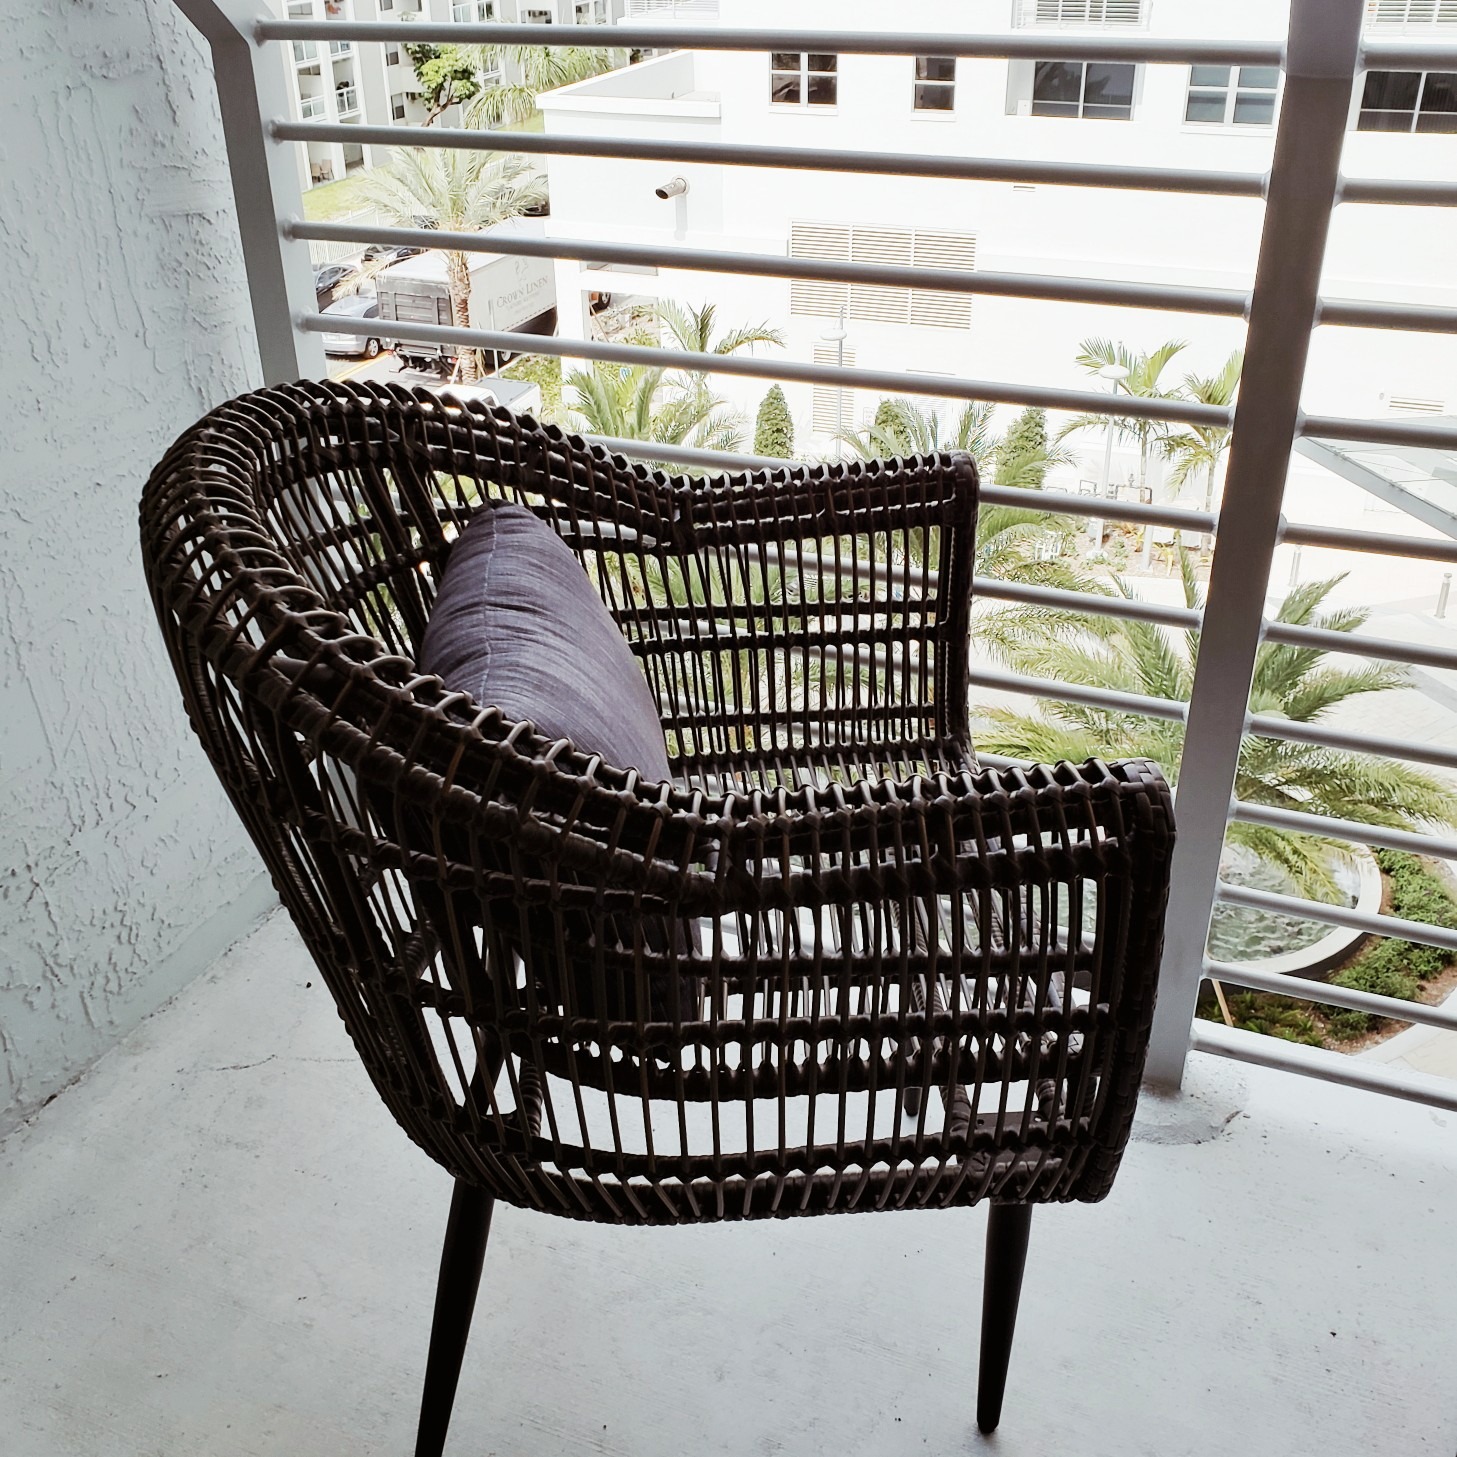 Circ Hotel Balcony Sitting Chair